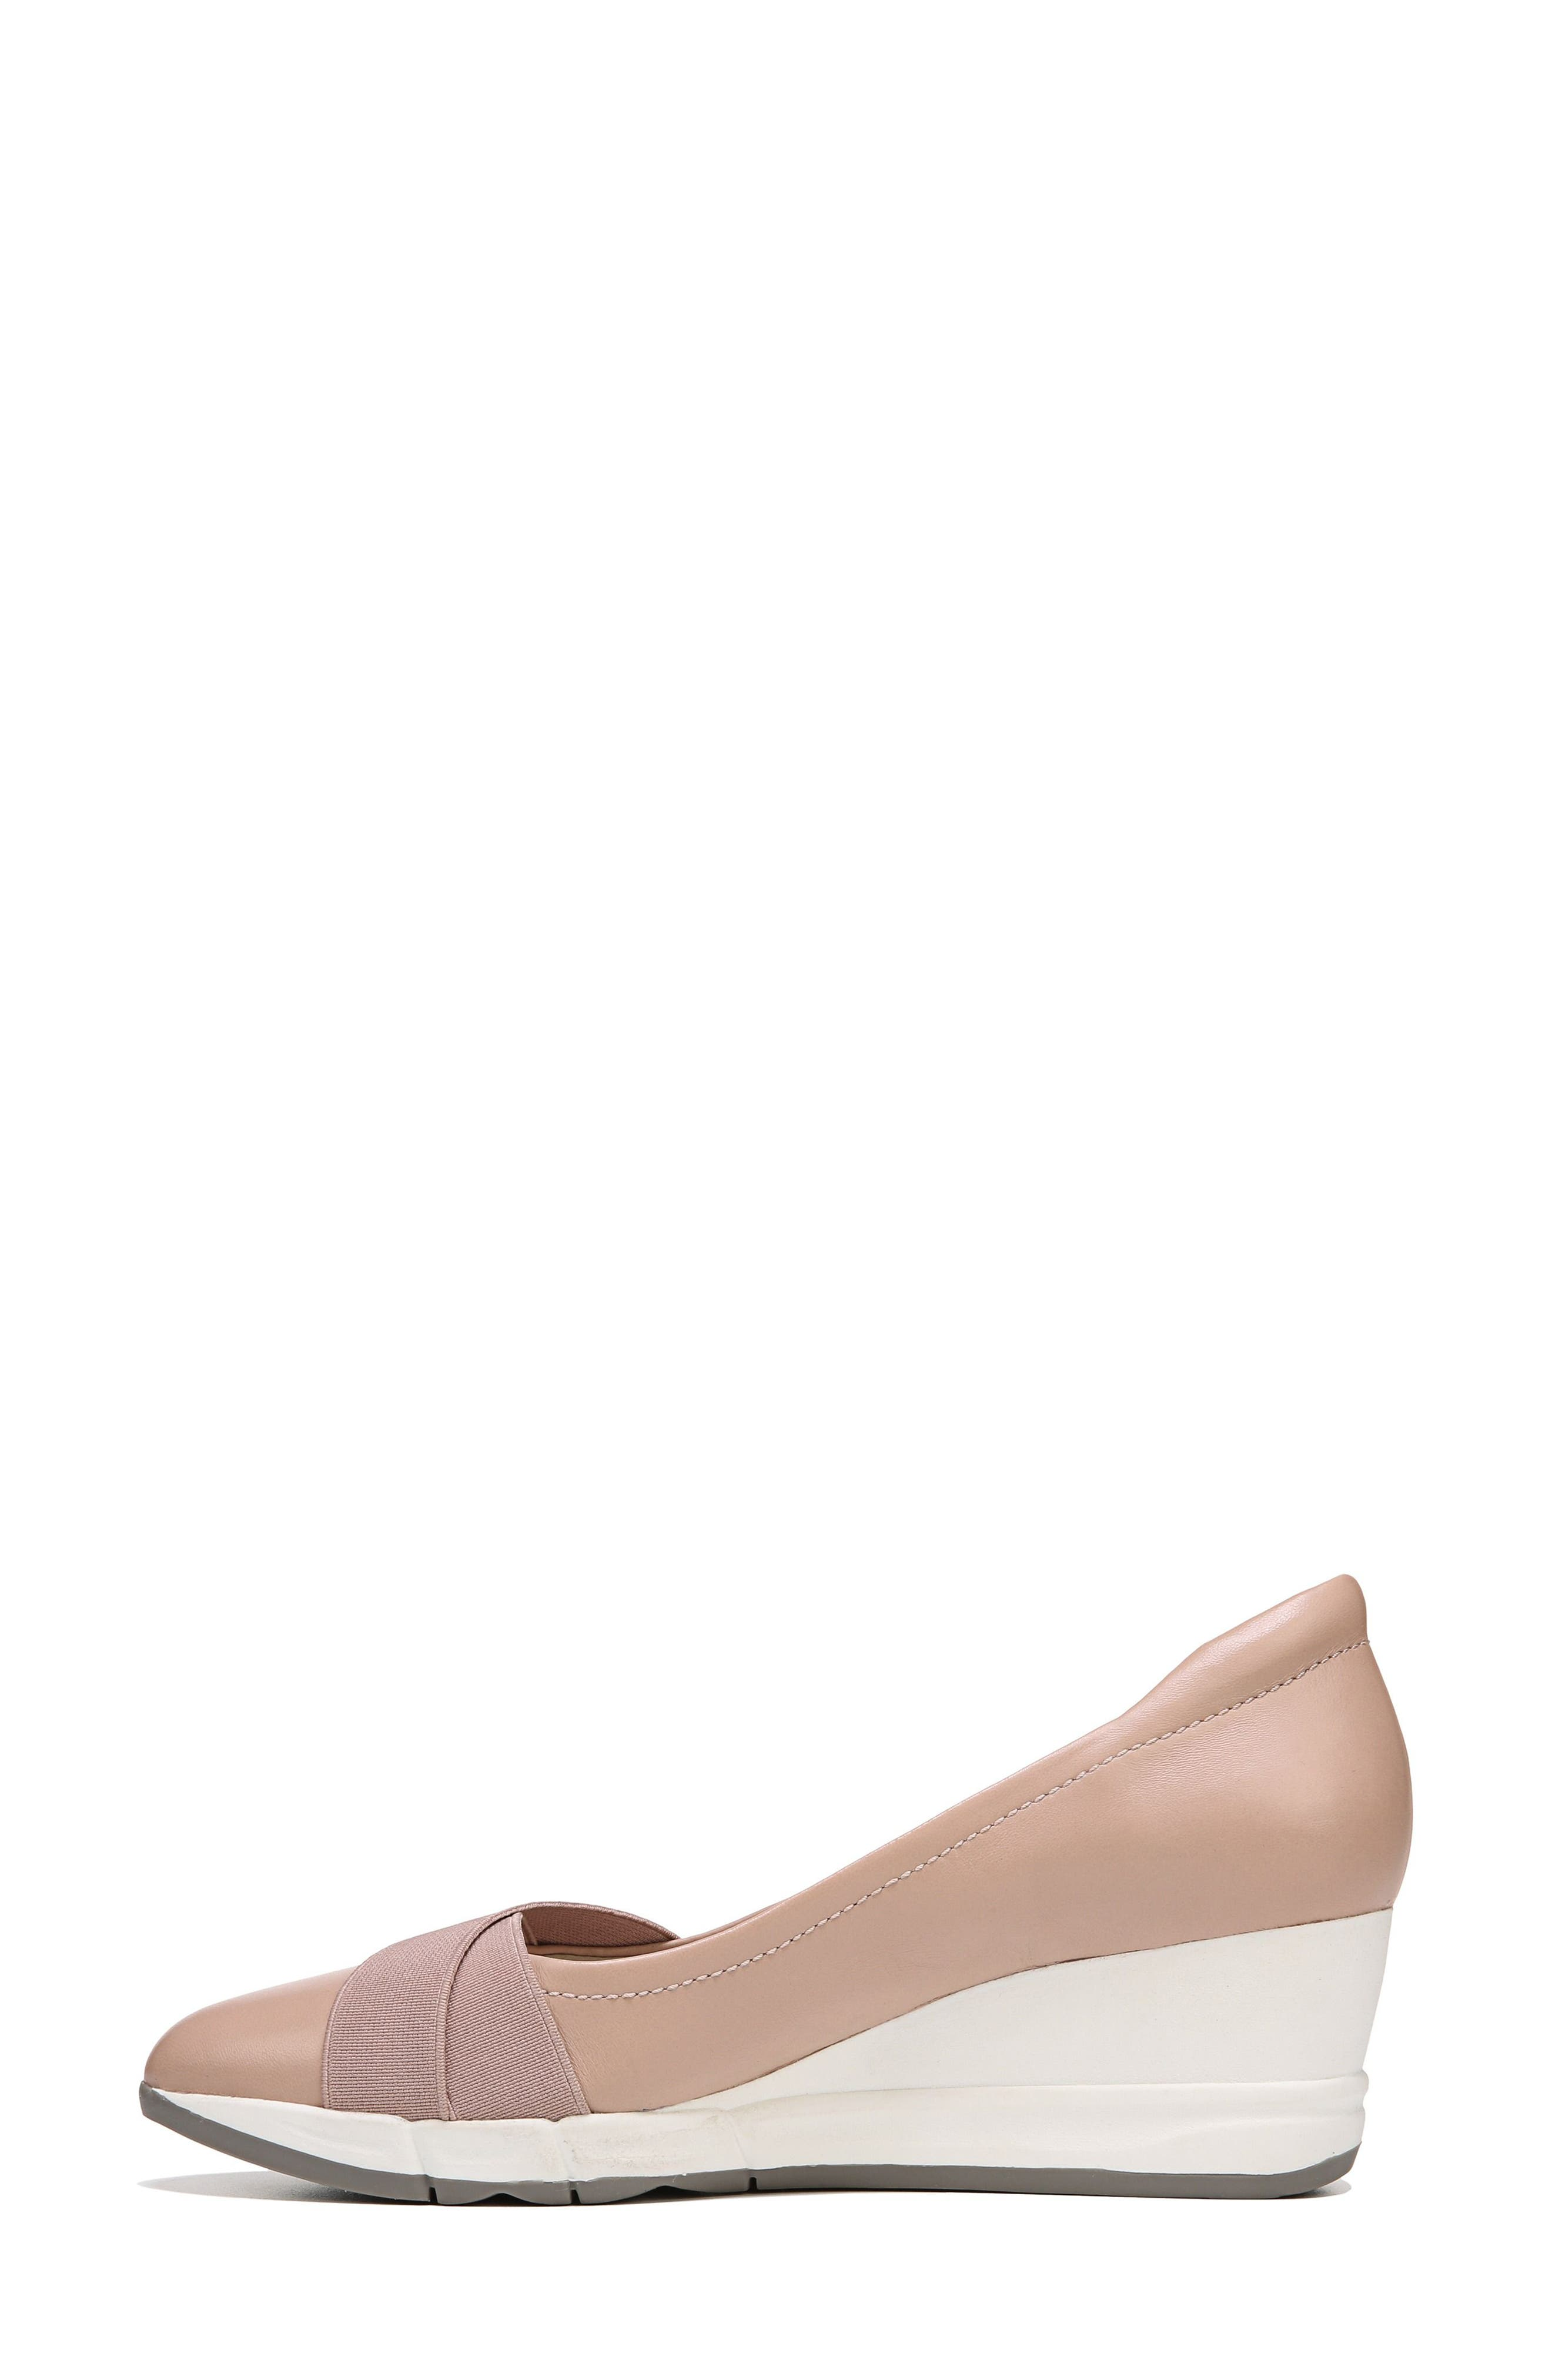 Harlyn Wedge Pump,                             Alternate thumbnail 4, color,                             Mauve Leather